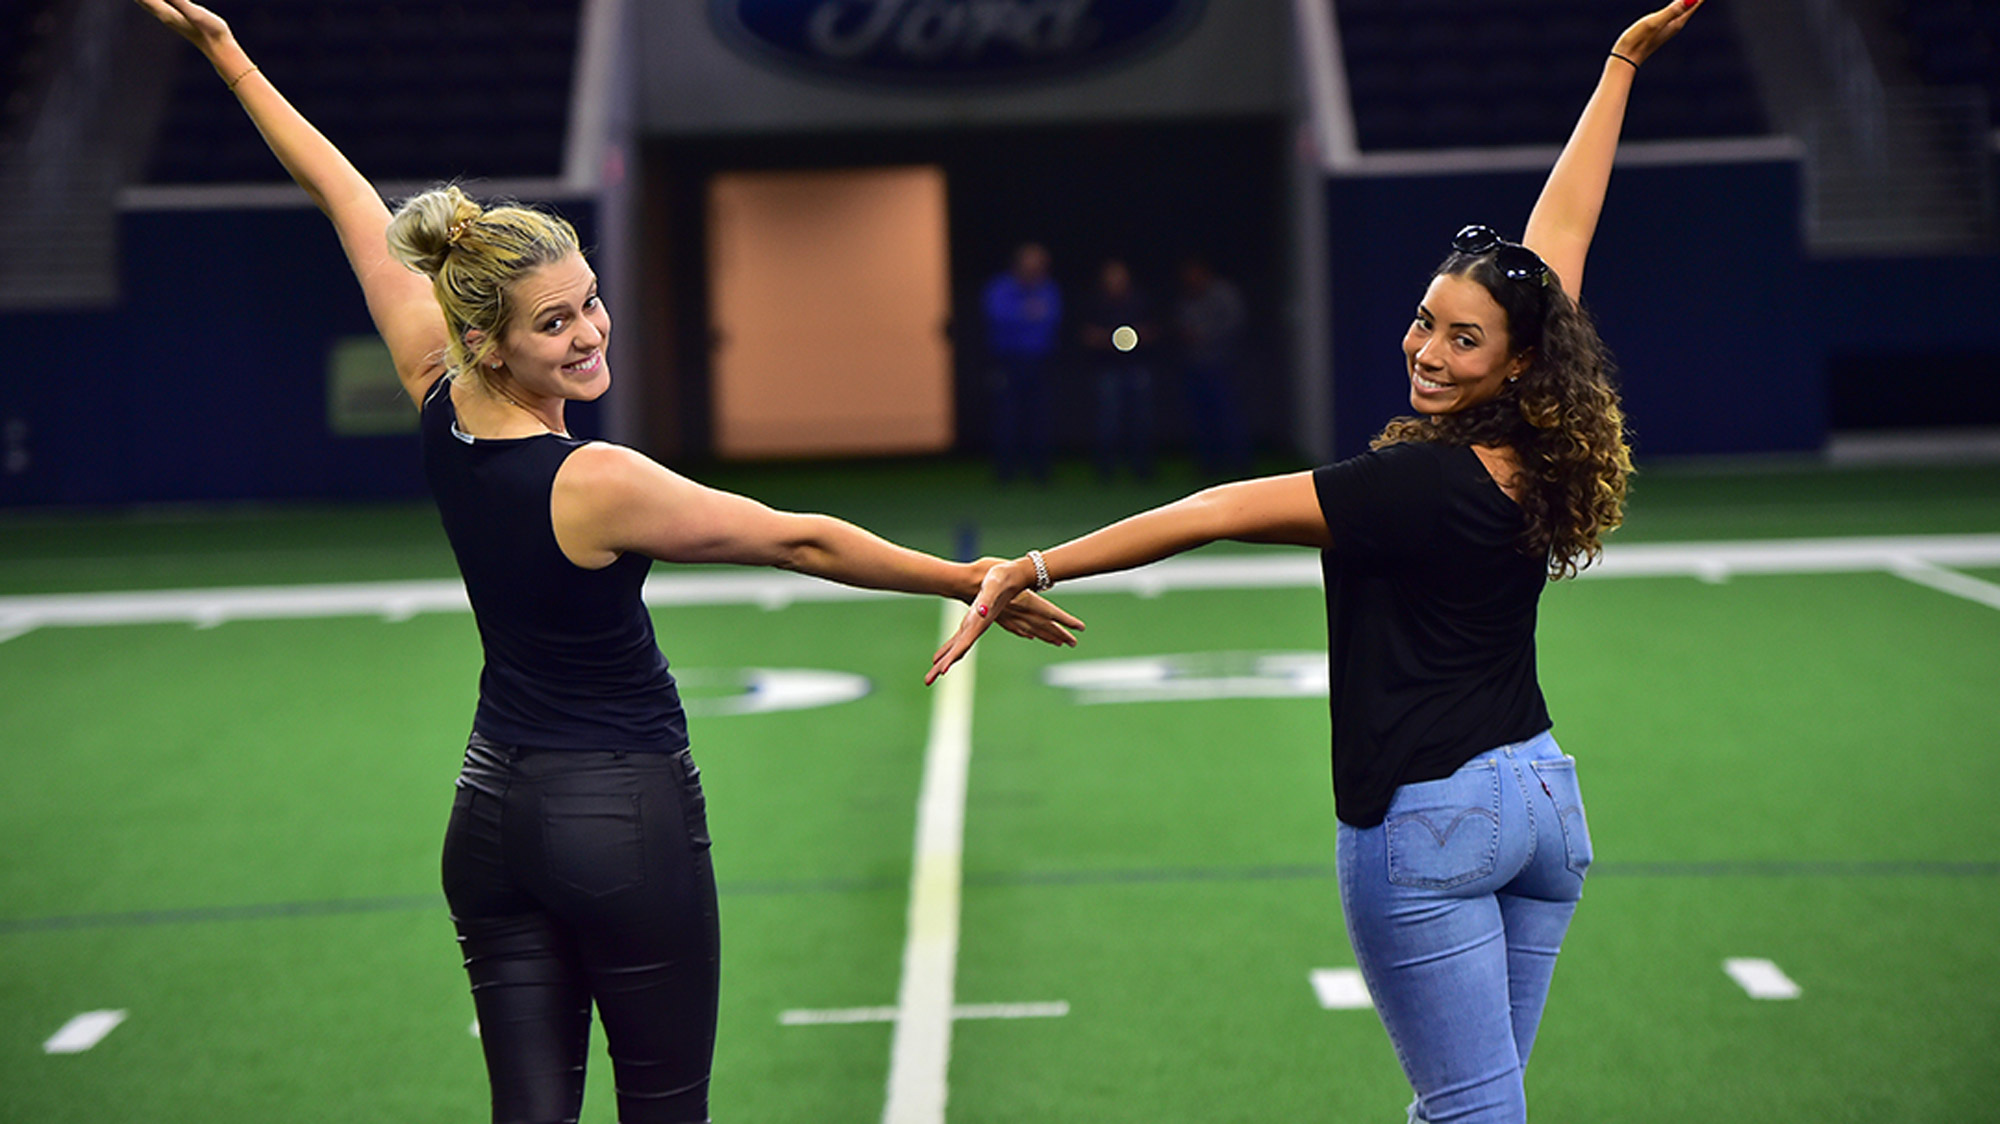 Cheyenne Woods and Olafia Kristinsdottir Visit The Star in Frisco